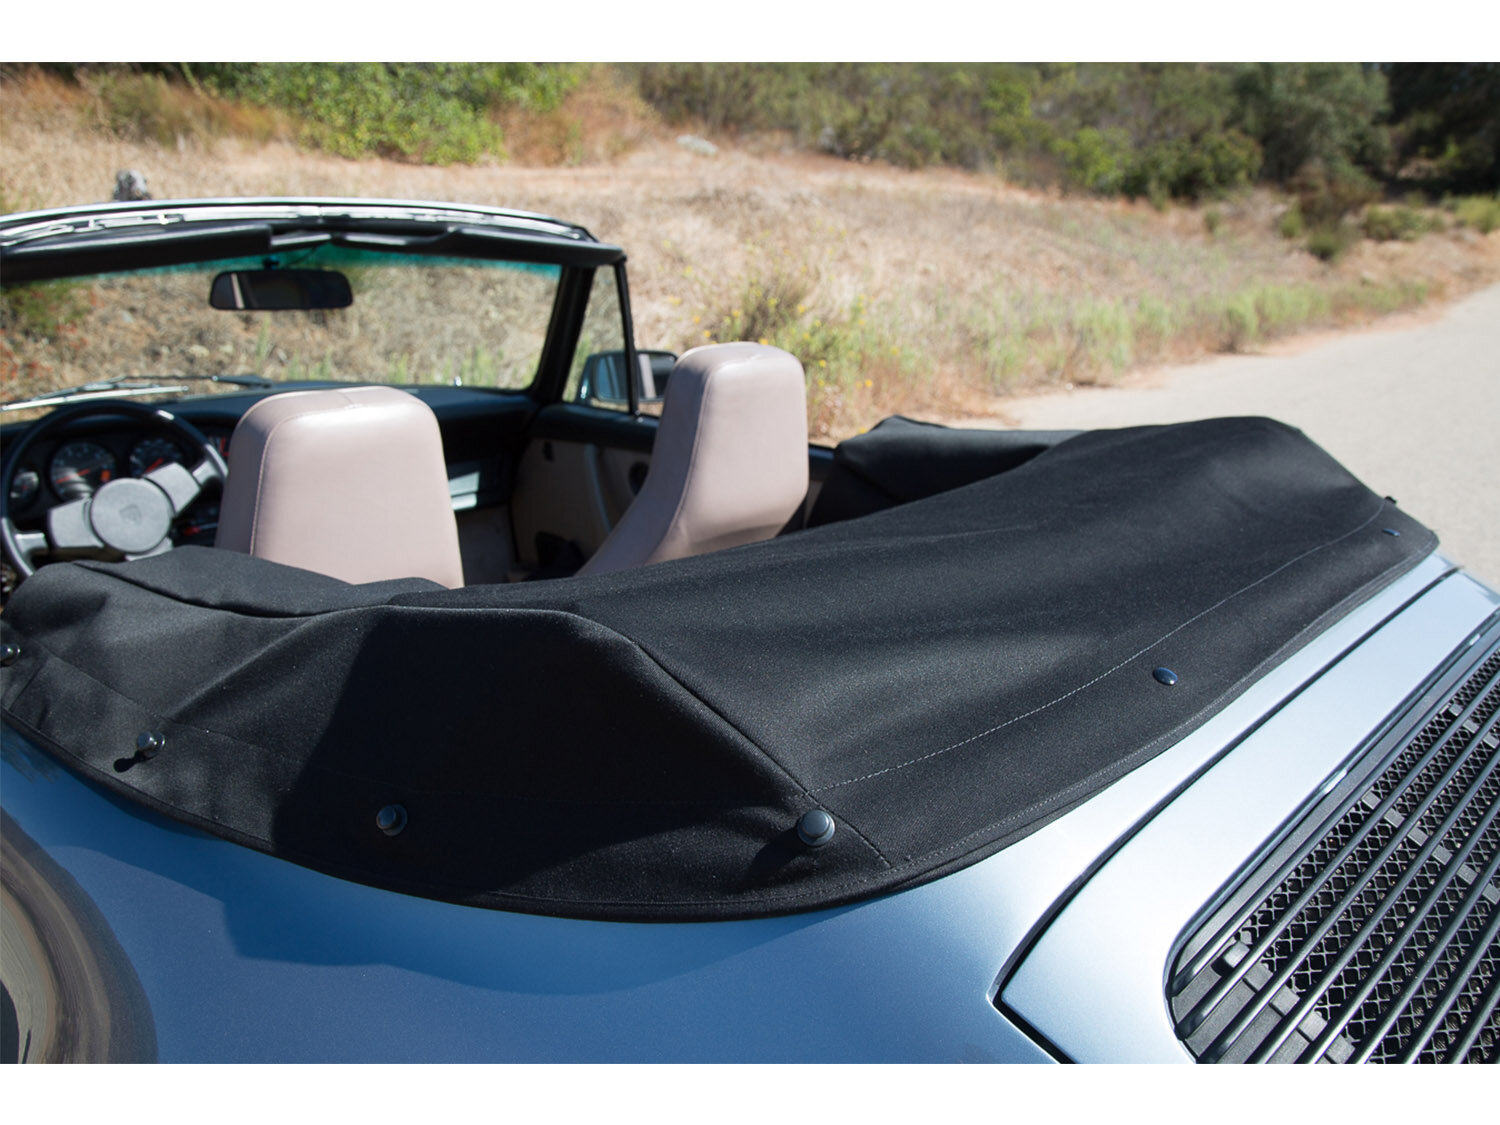 1984-carrera-cabriolet-slate-blue-911-sc-for-sale-makellos-classics_0001s_0000s_0021_1B7A6619.jpg